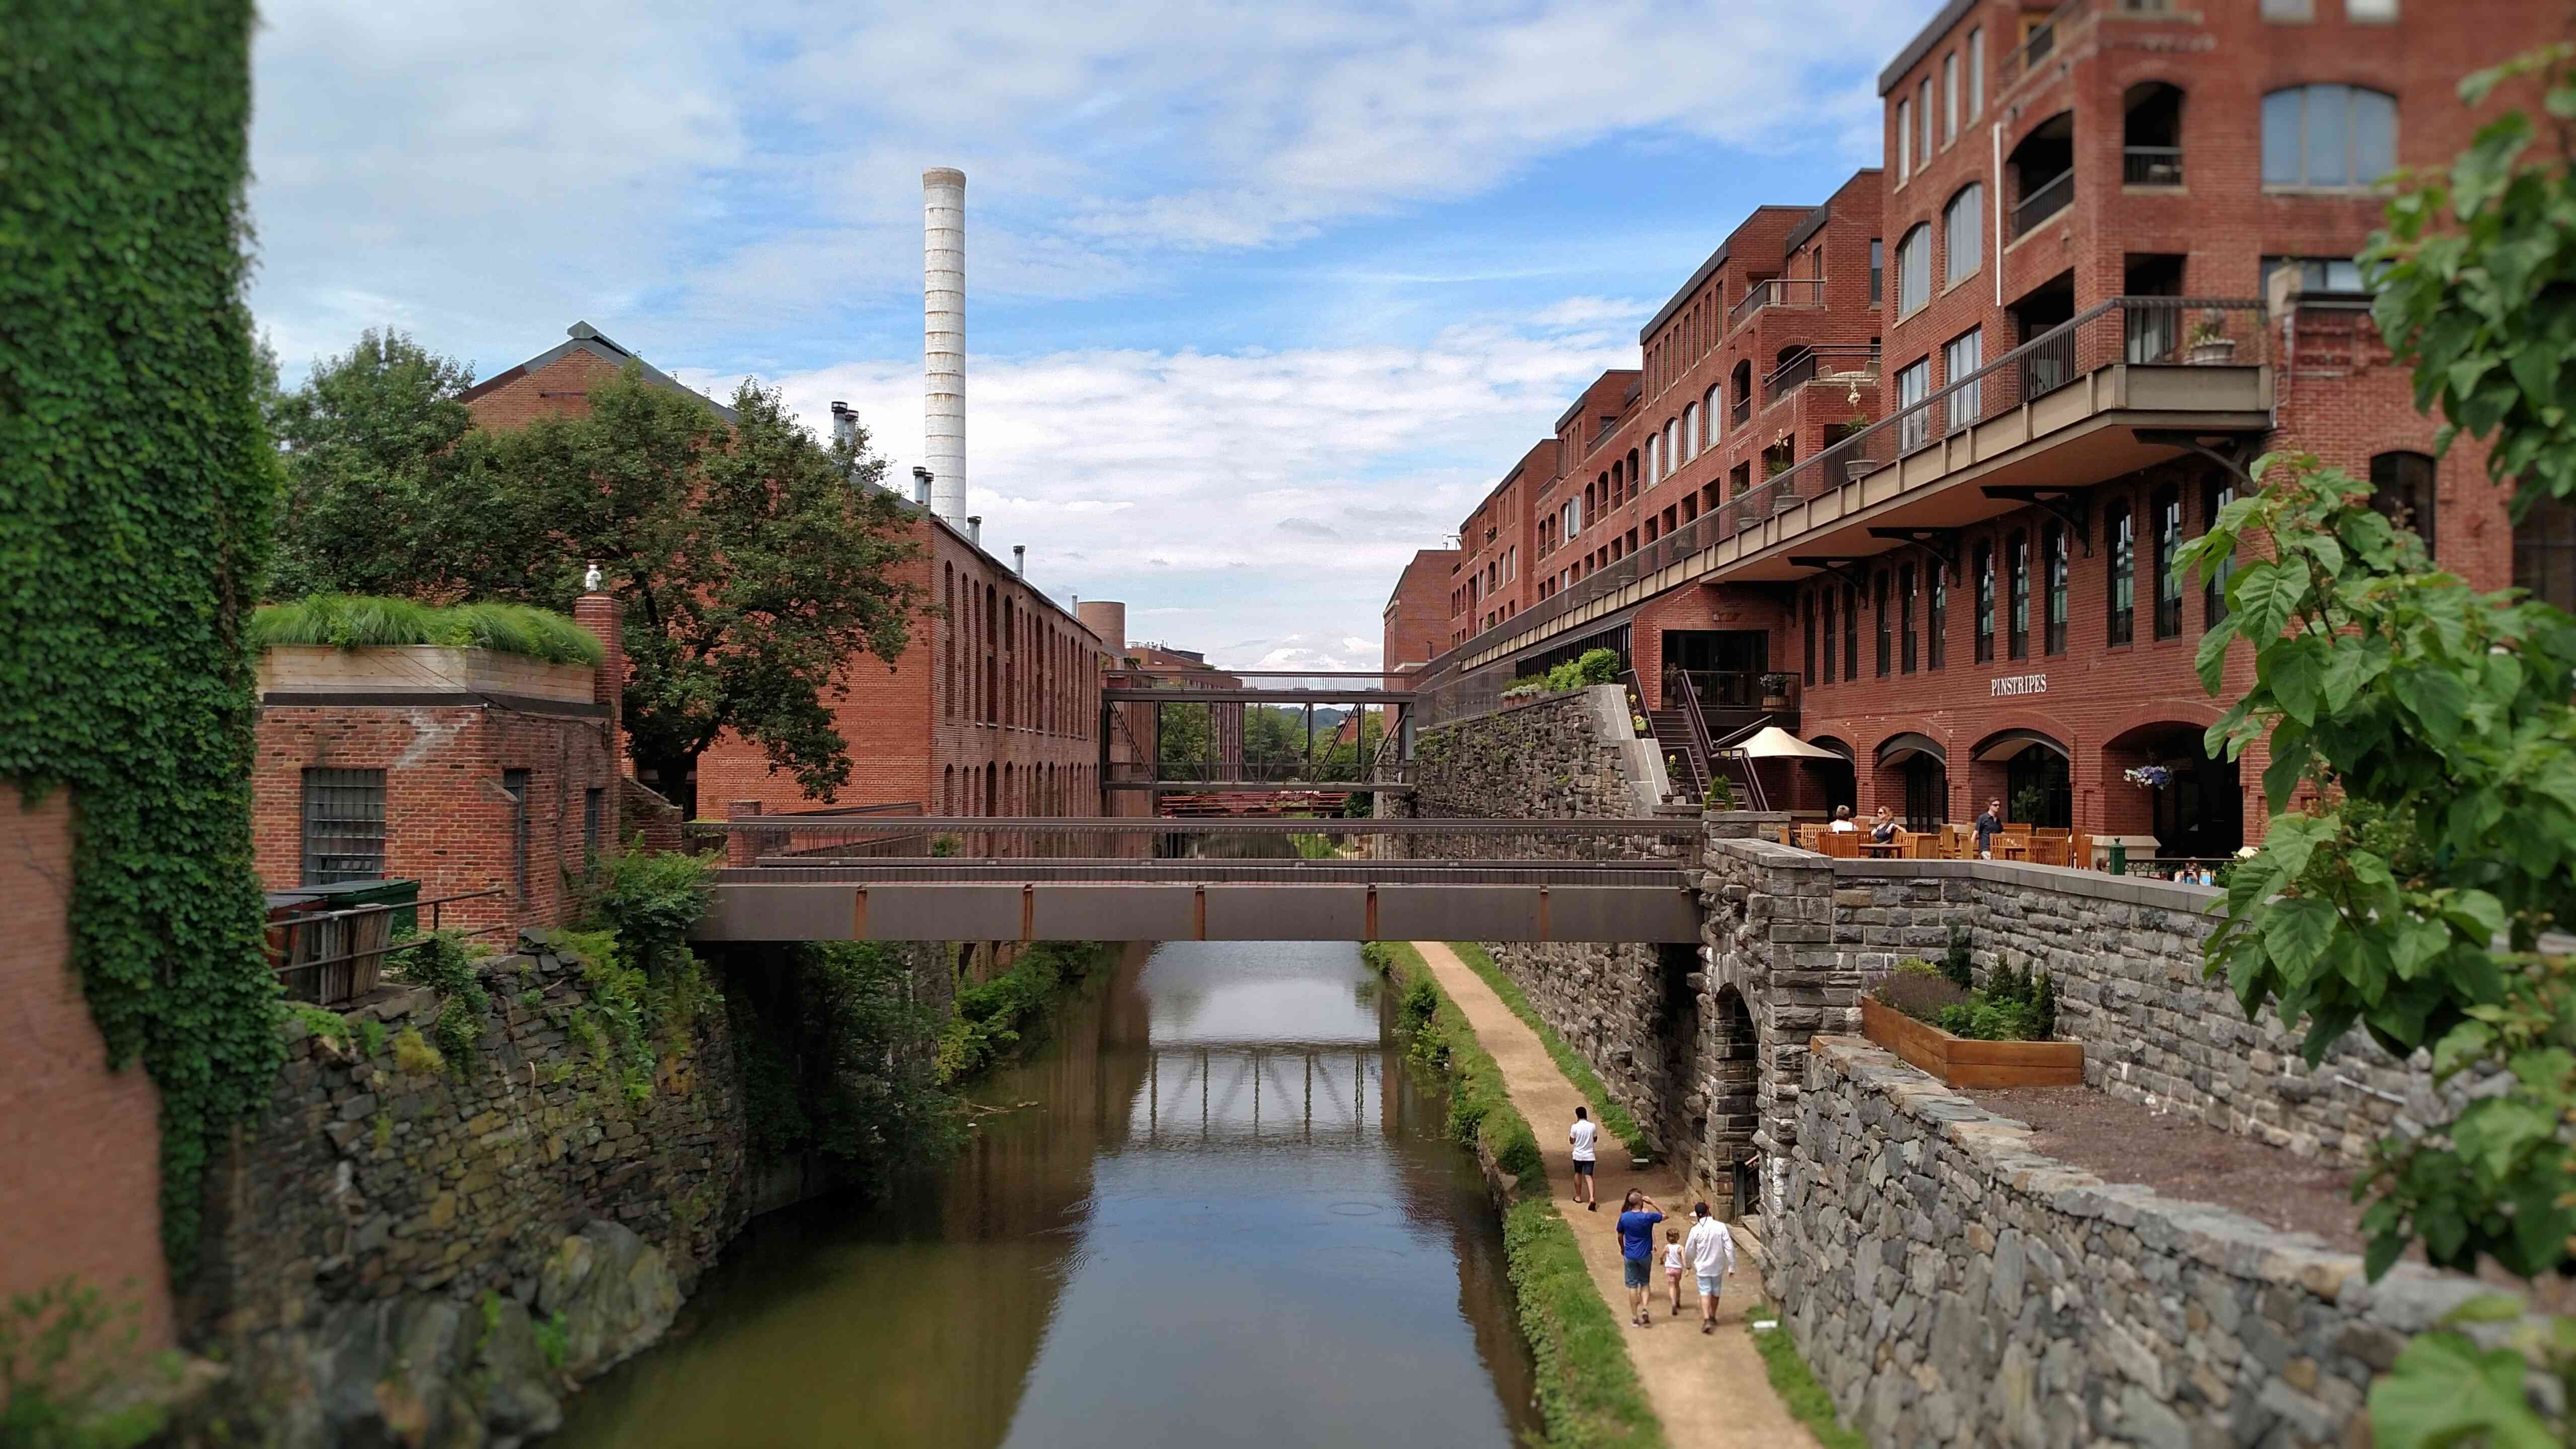 View of buildings along canal in Georgetown